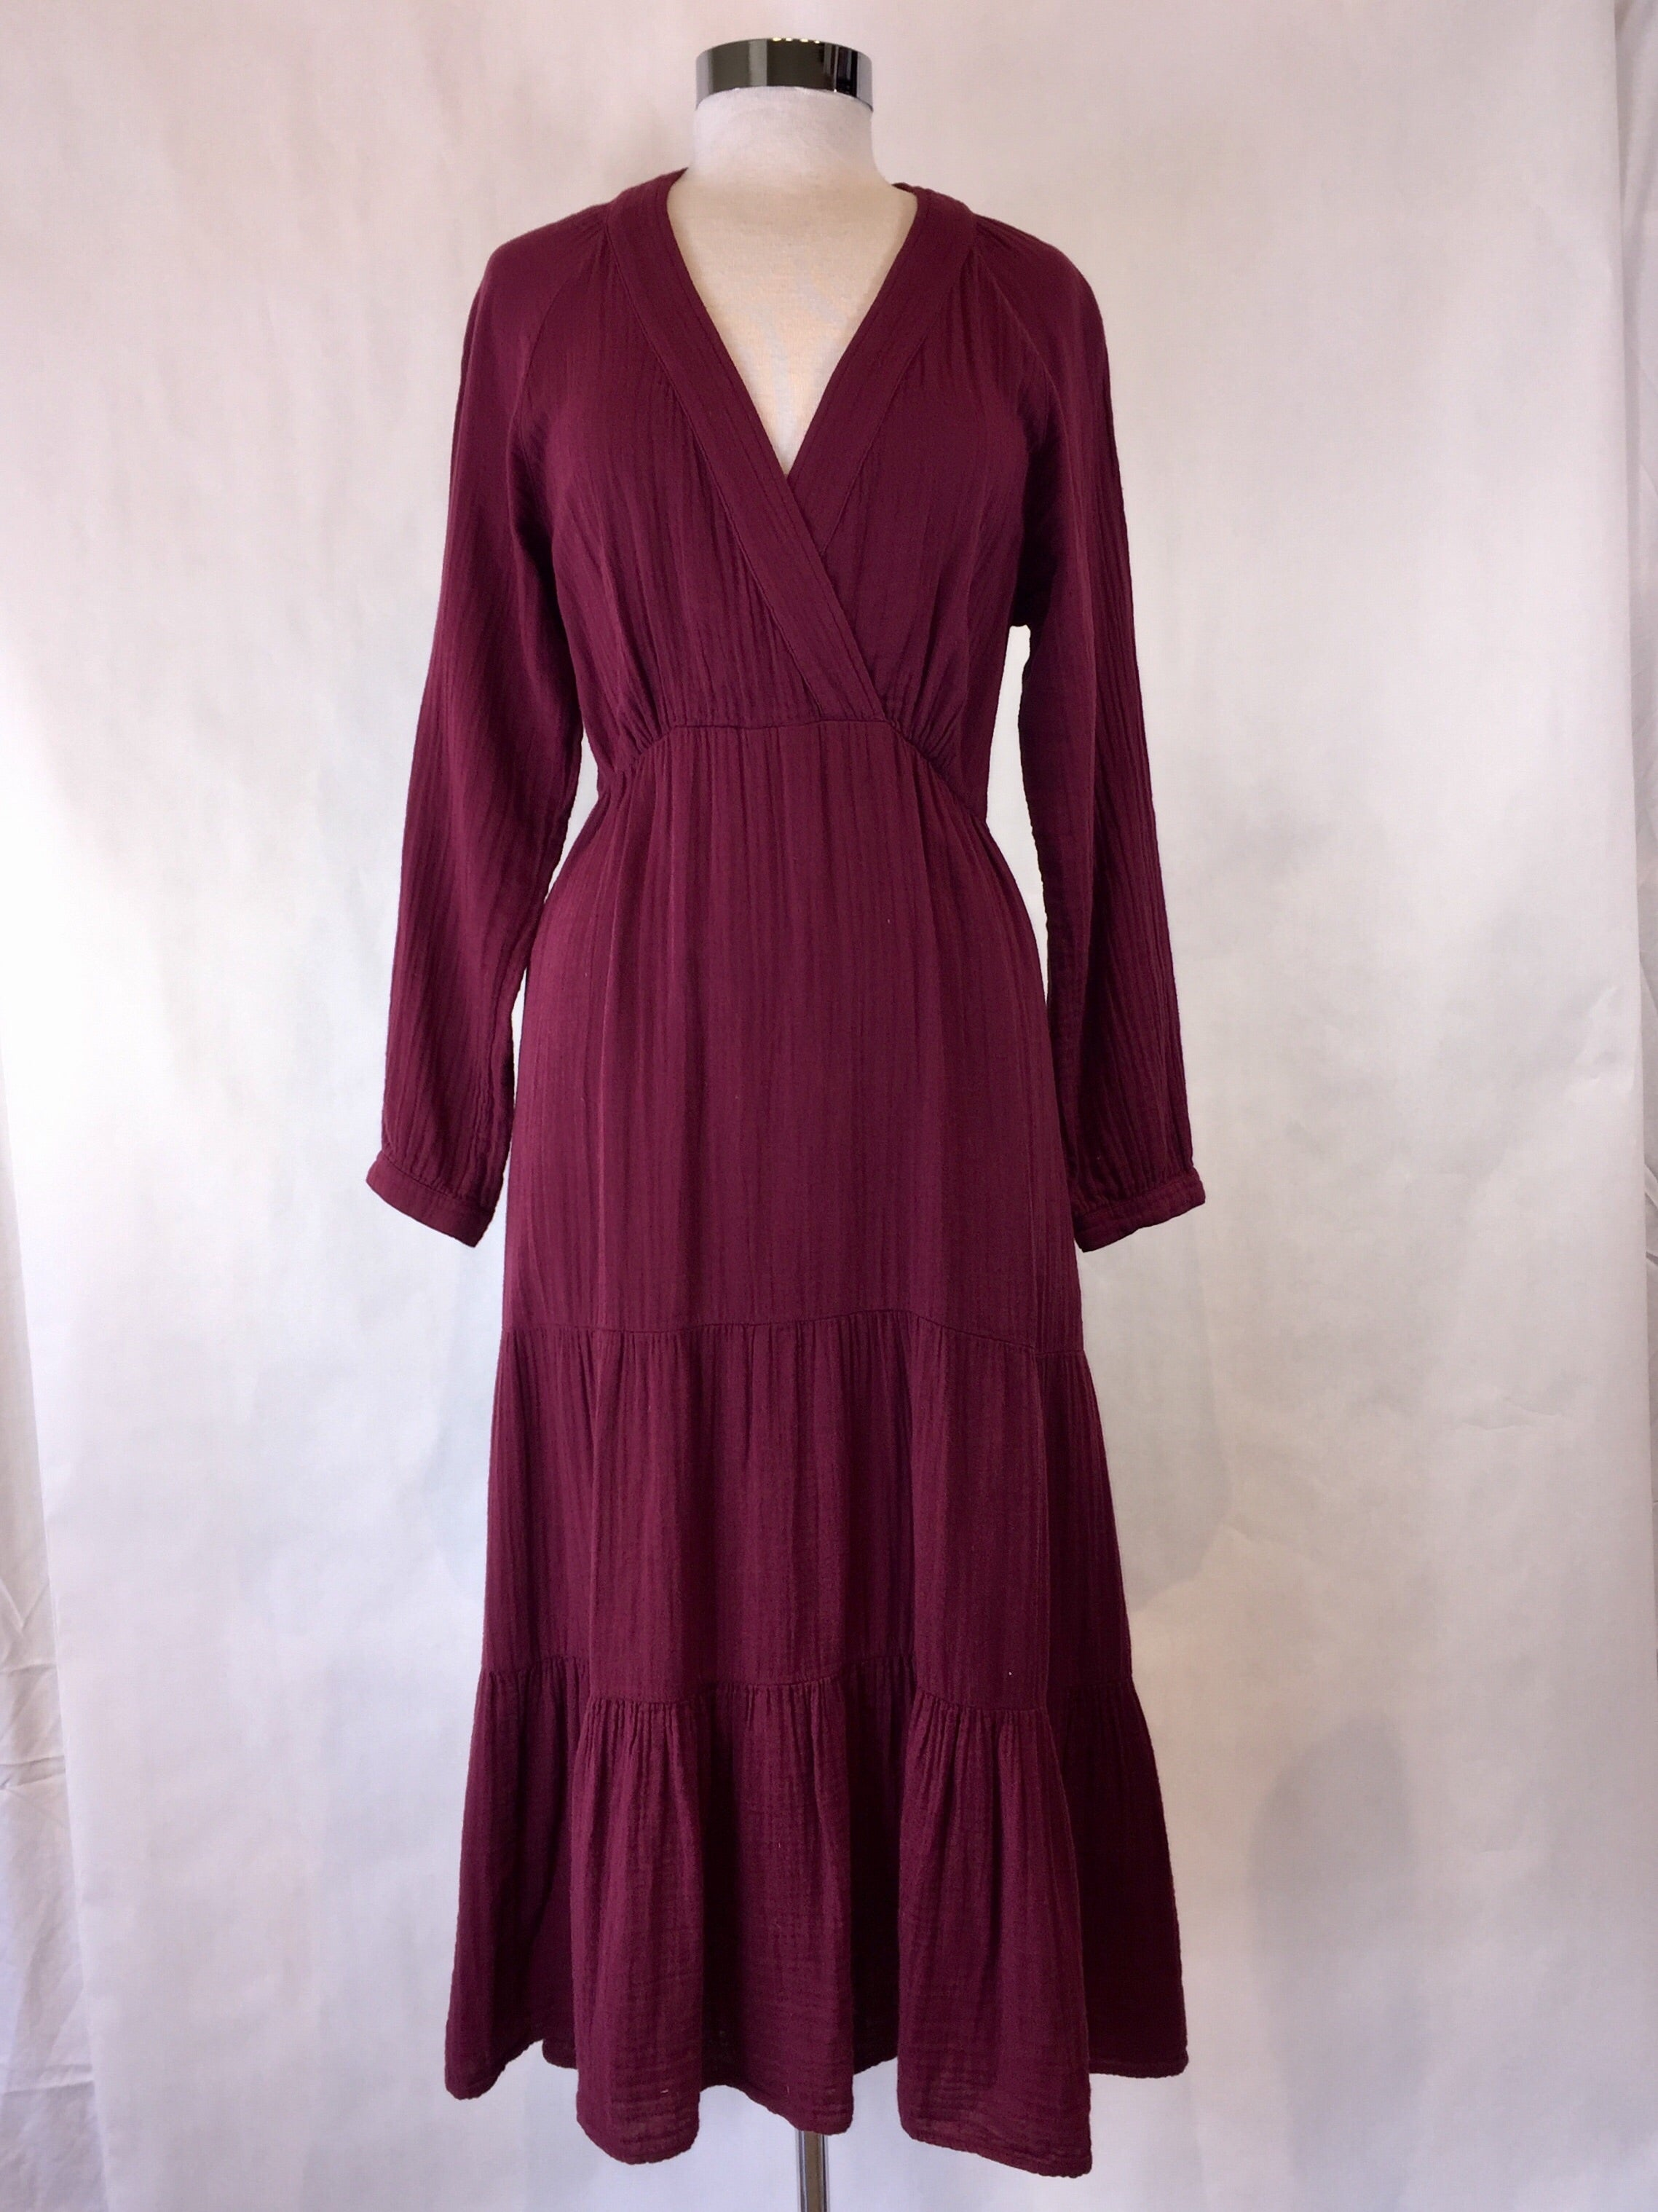 Burgundy Cotton Dress